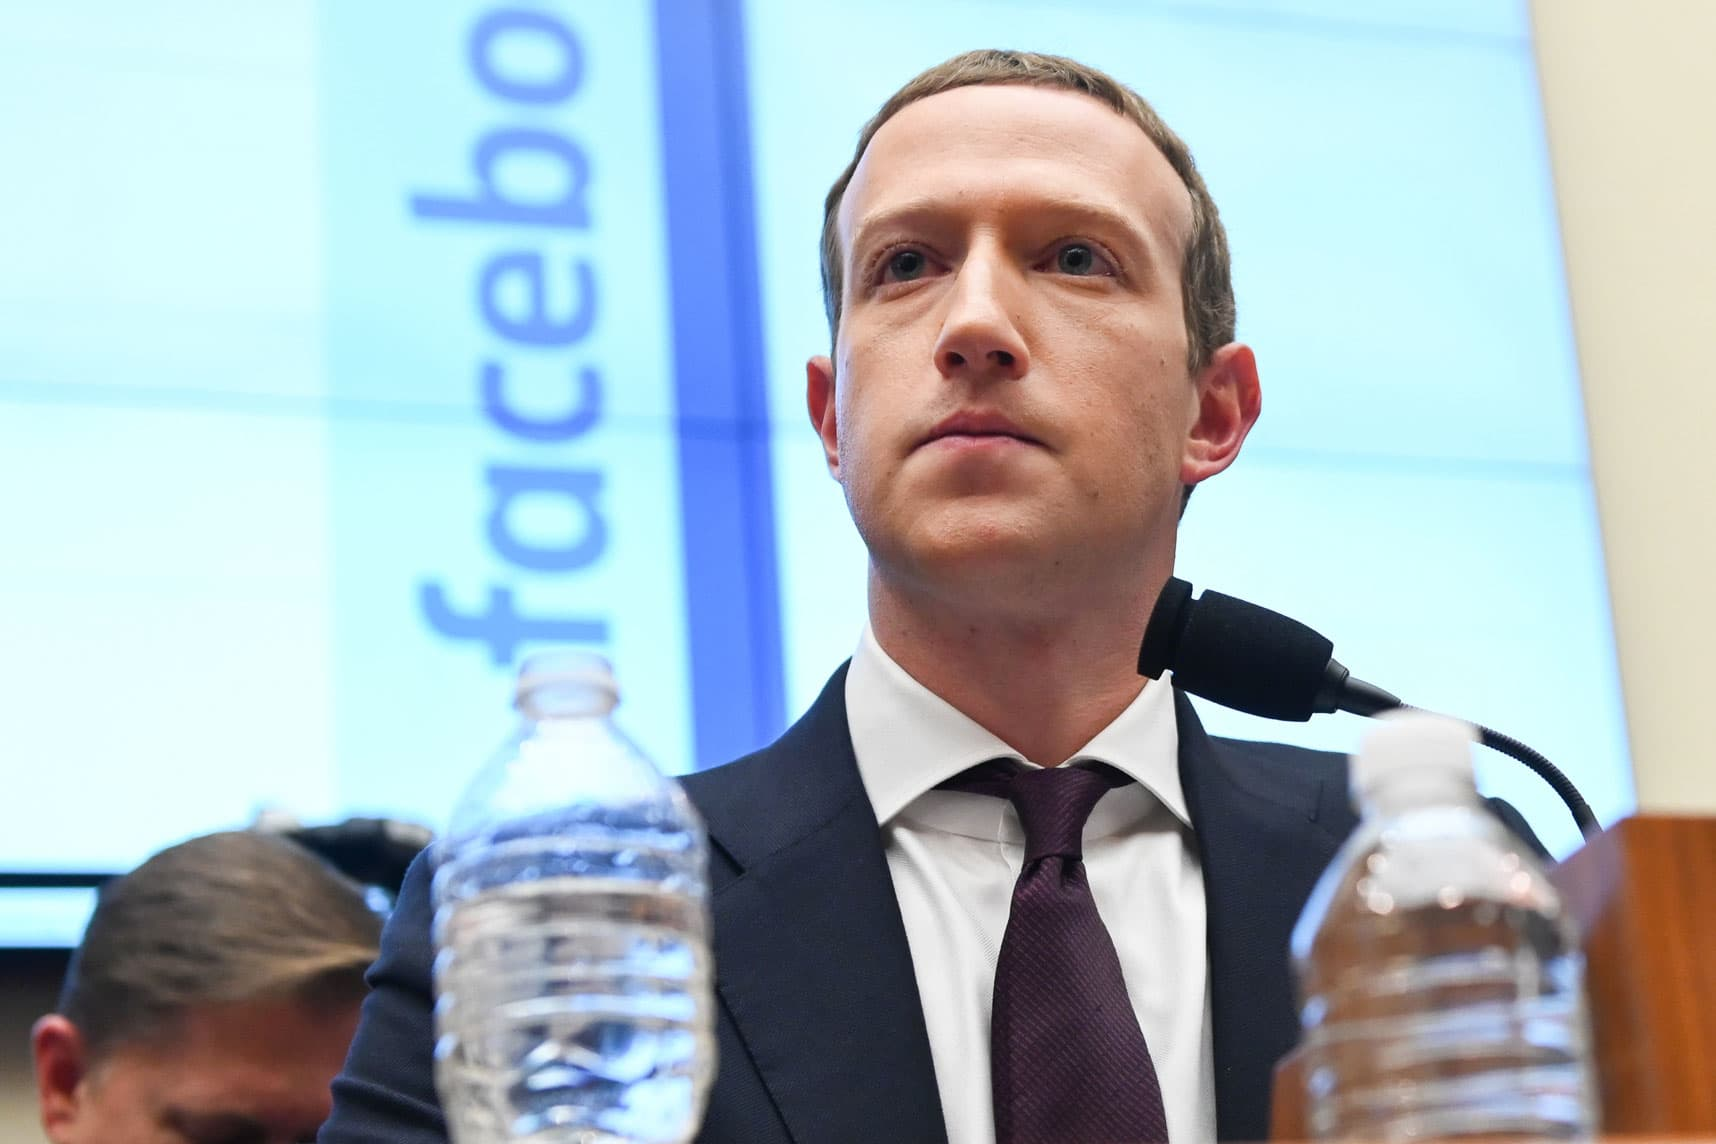 The Facebook Oversight Board proved it's not Mark Zuckerberg's puppet — now it's his move